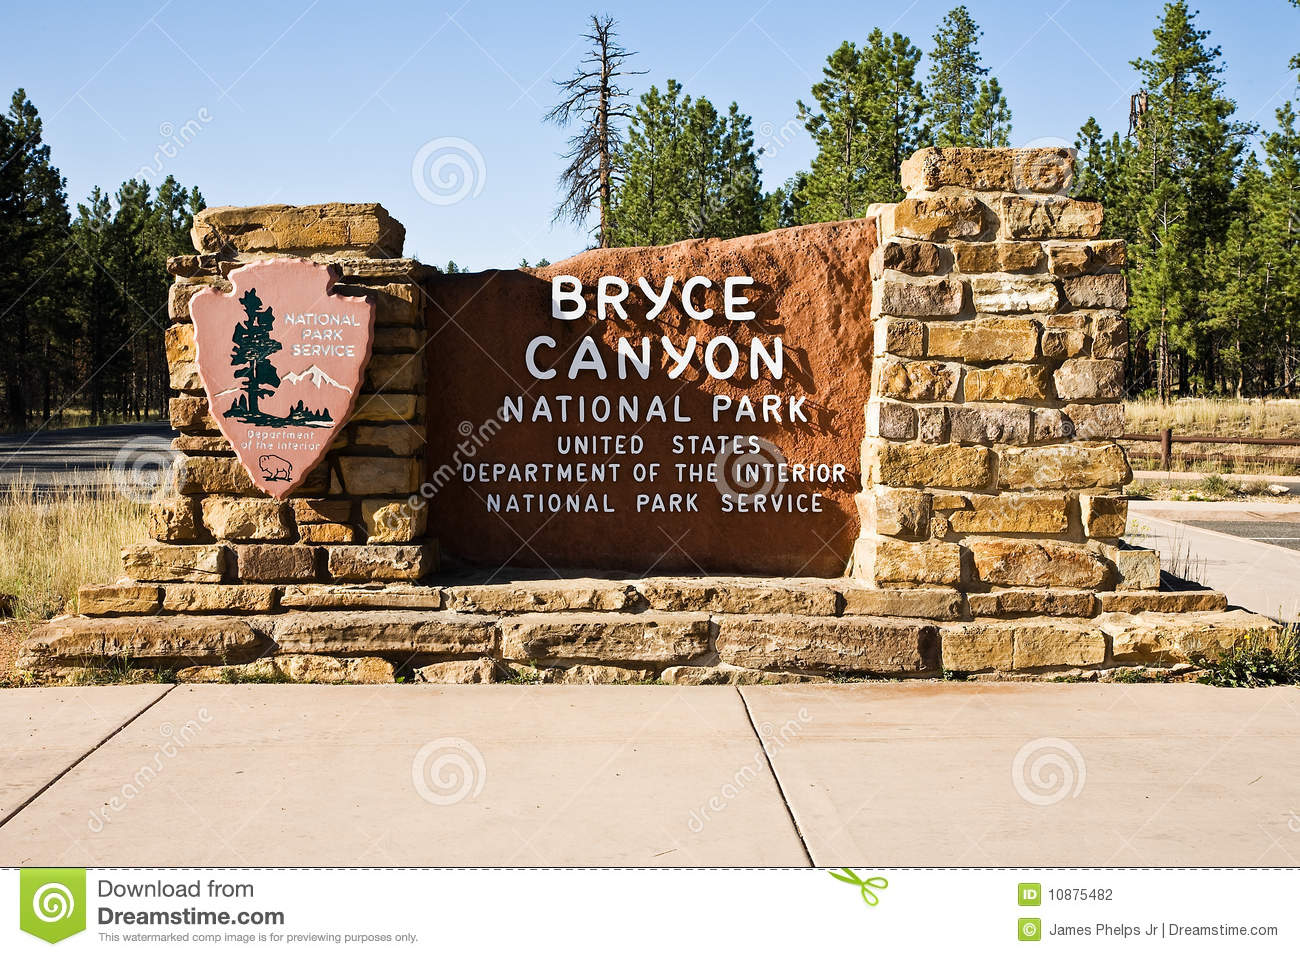 Bryce Canyon clipart #5, Download drawings